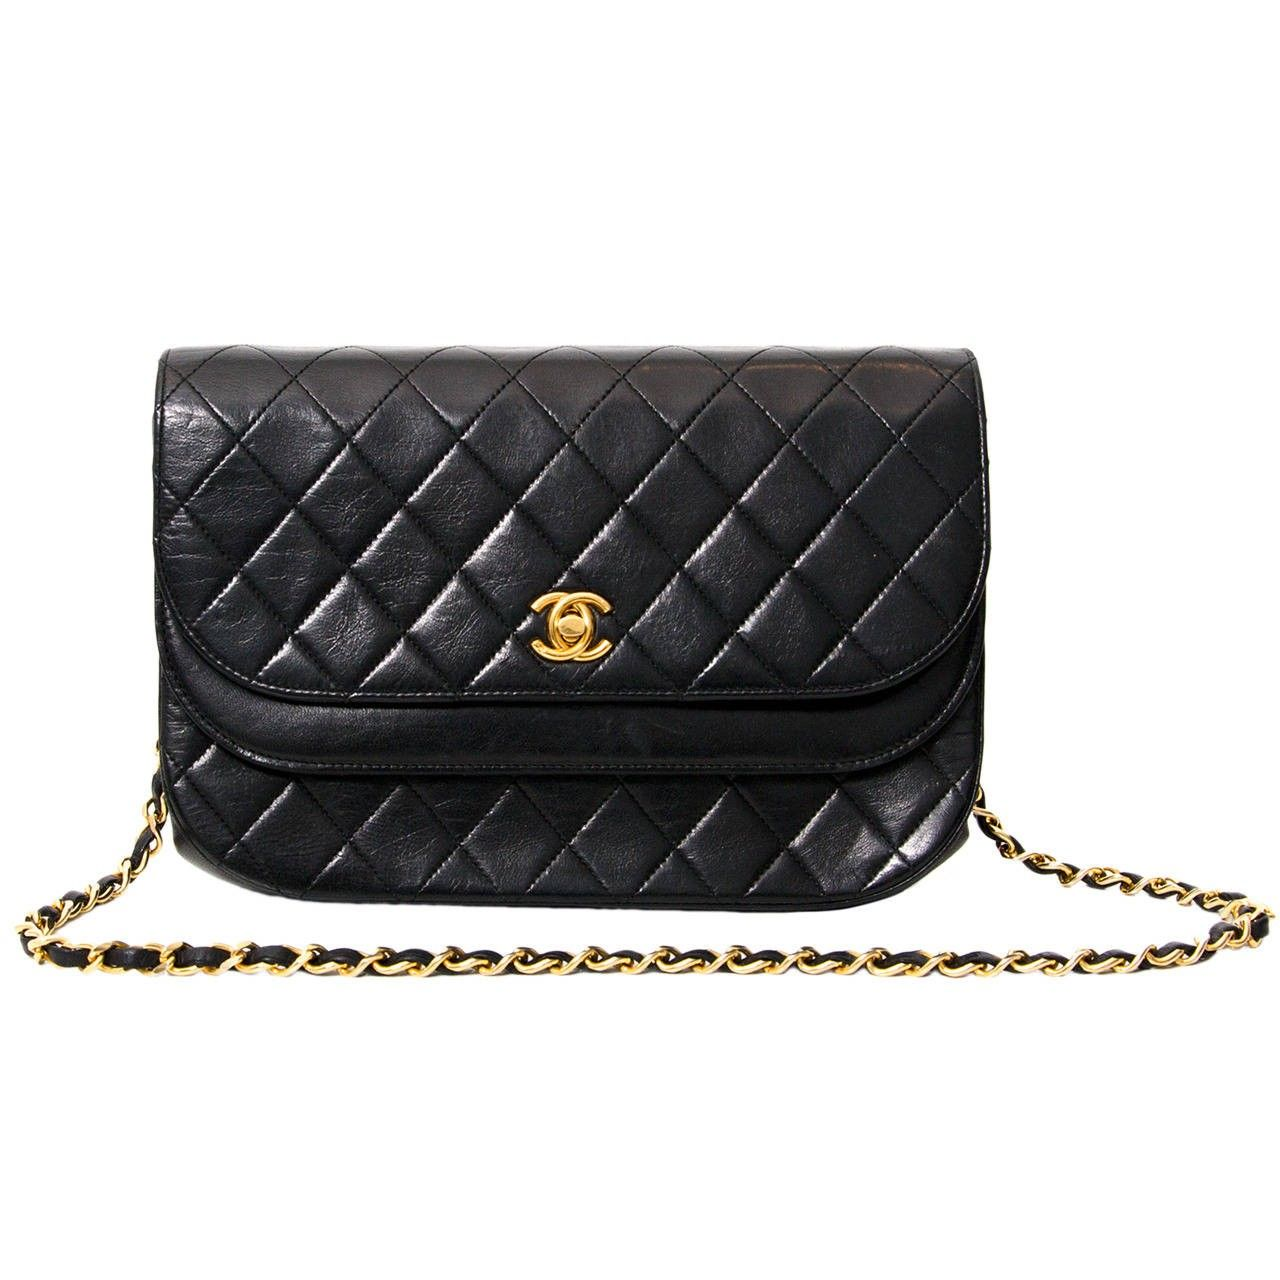 f2ddd12fd54 vintage tweedehands Chanel 2.55 online e-shop labellov. Chanel Black  Quilted Flap Bag ...